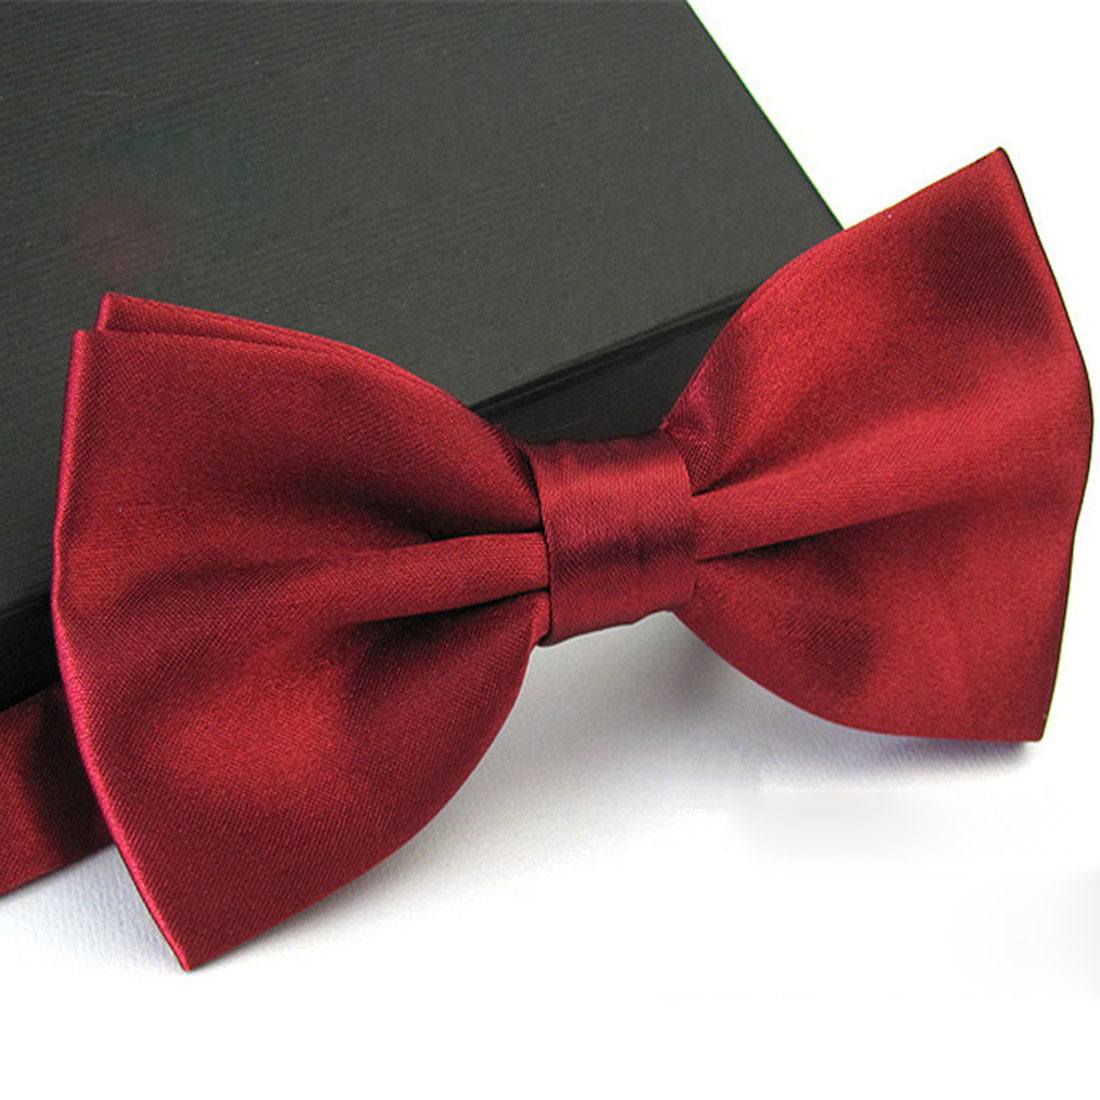 Bowtie Men Formal Necktie Boy Men's Fashion Business Wedding Bow Tie Male Dress Shirt Ties For Men Butterfly Ties For Men Hot